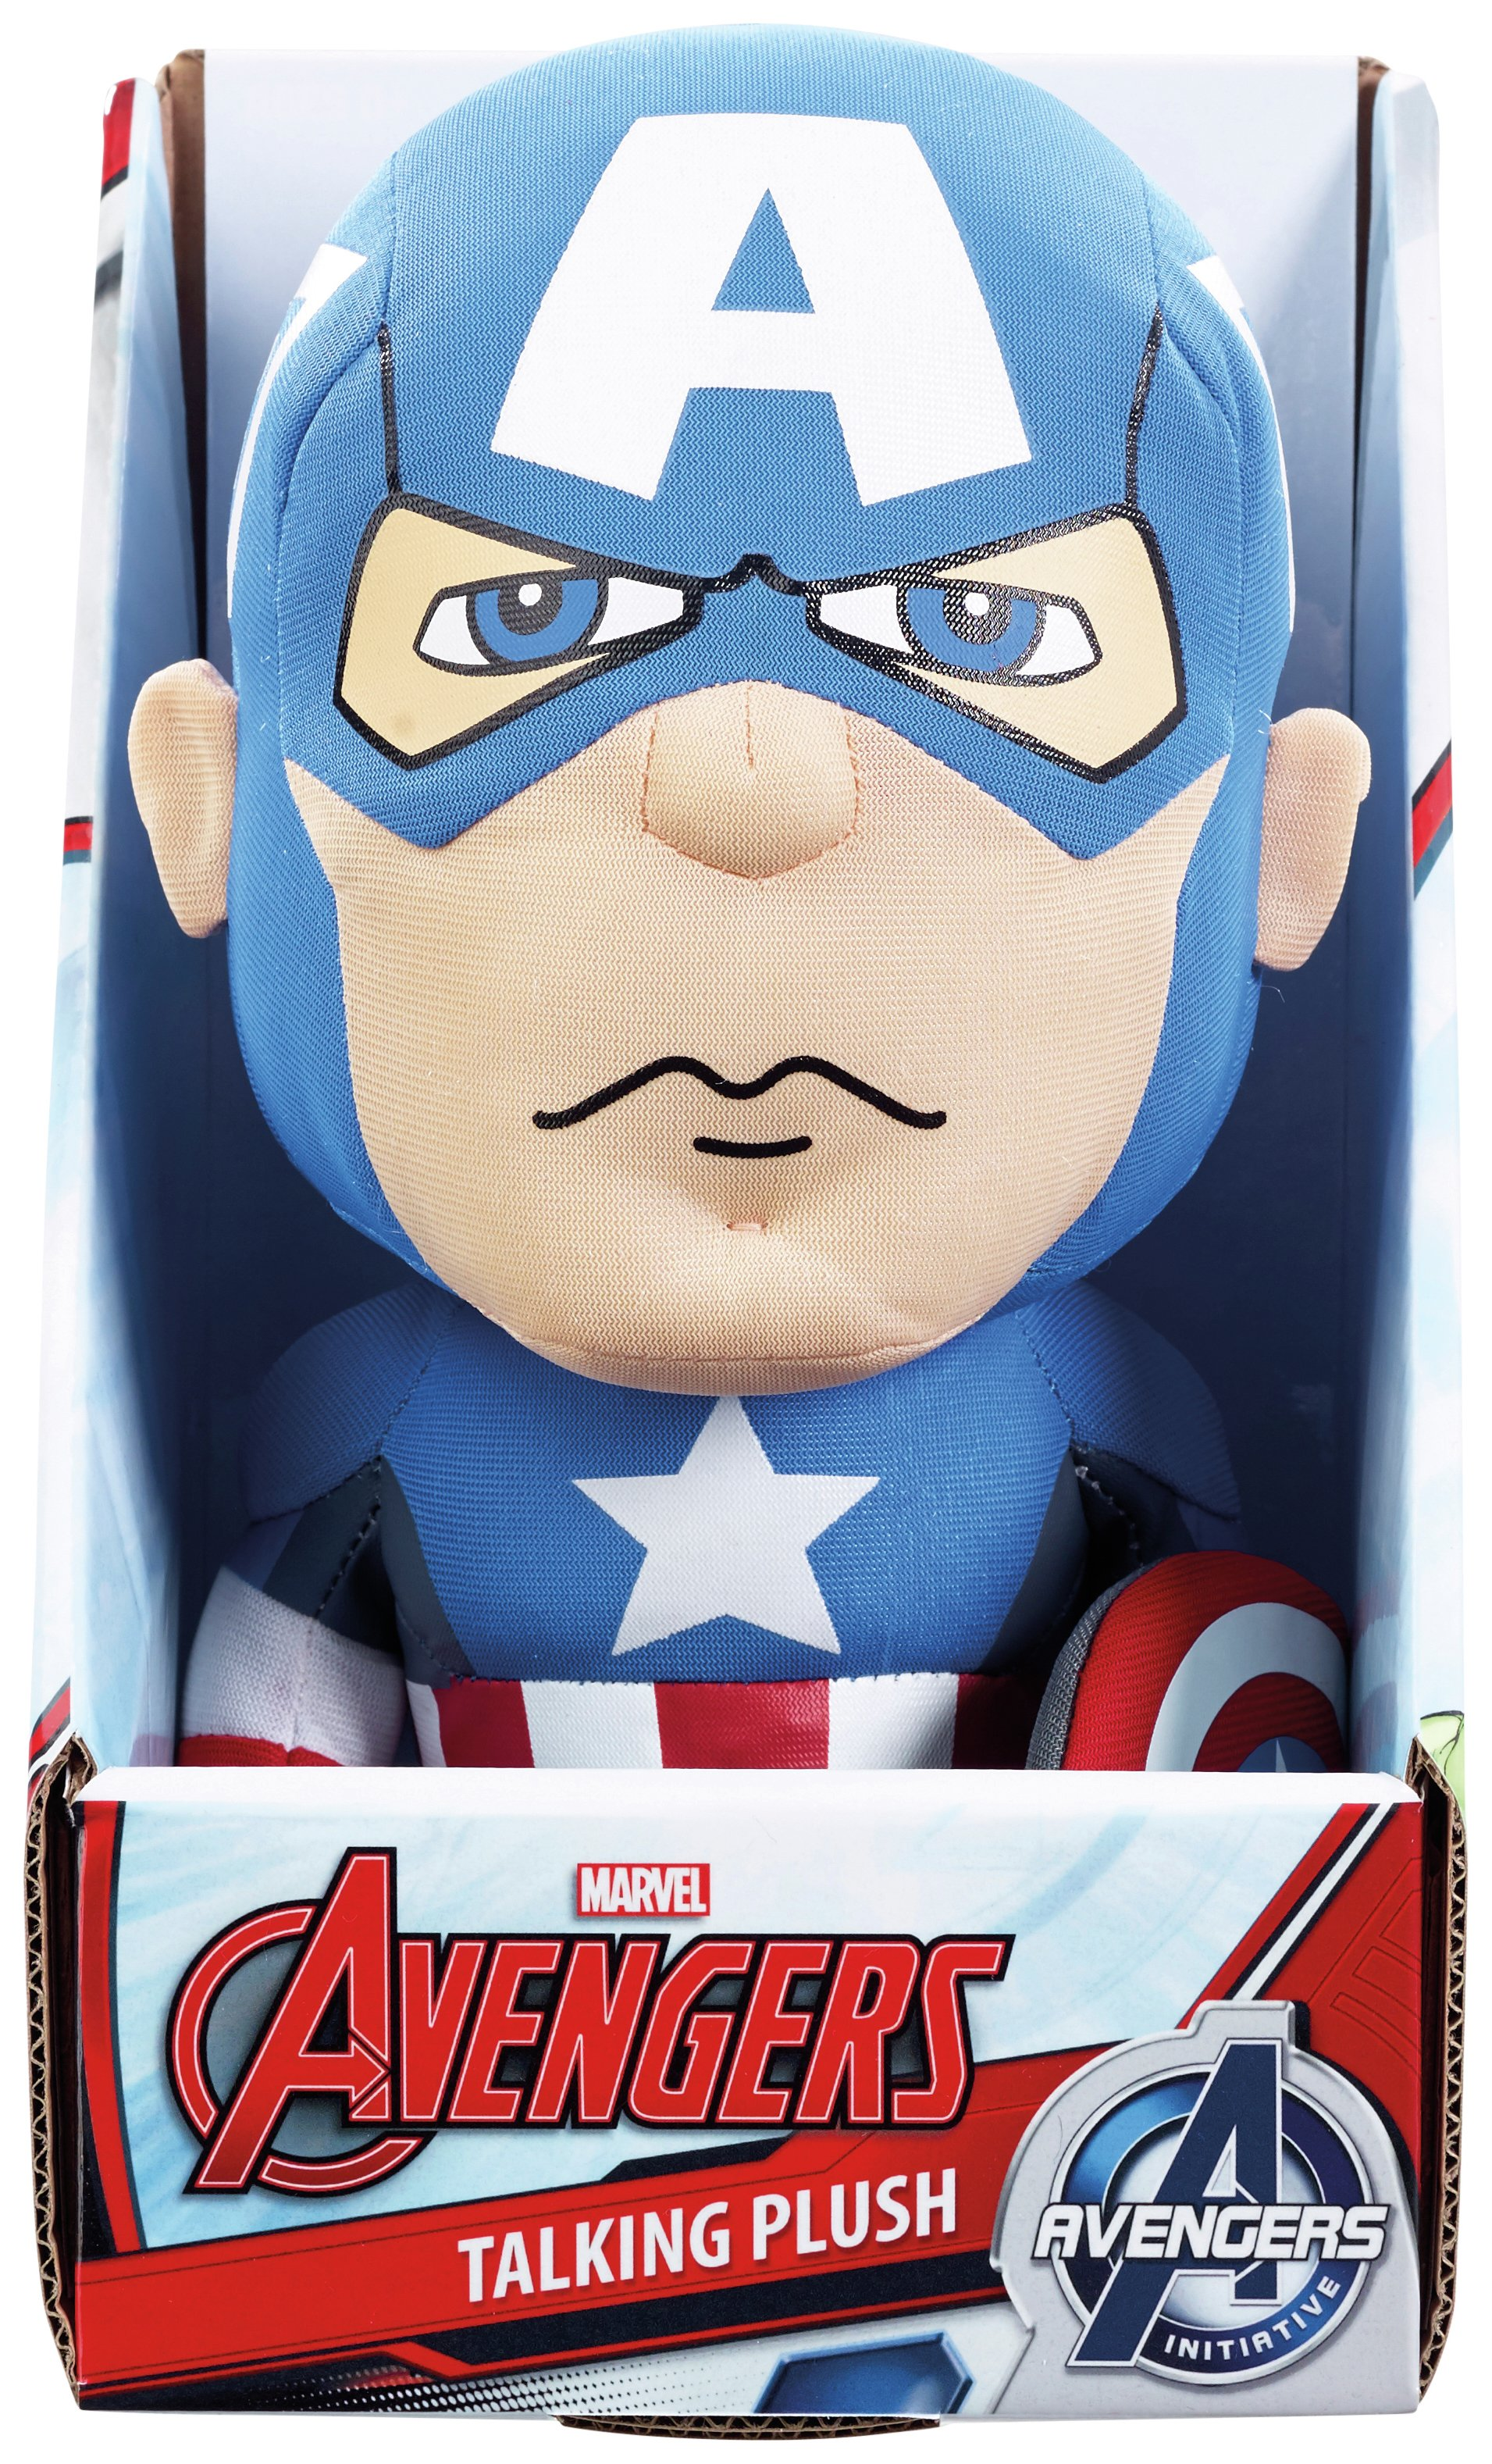 Image of Avengers Medium Talking Plush - Captain America.